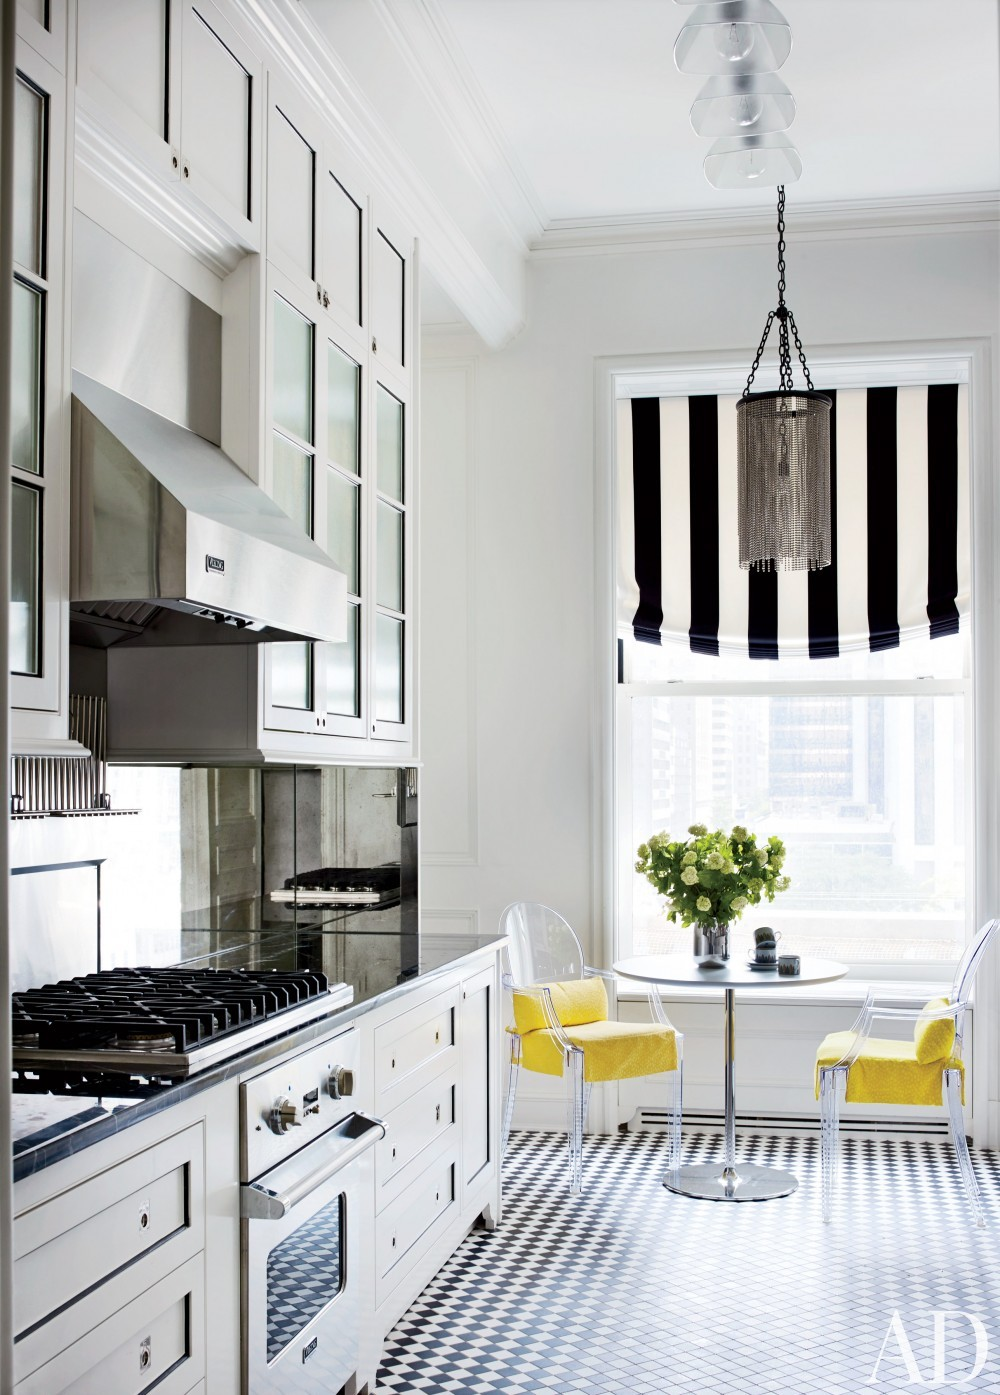 Traditional Kitchen by Susanna Maggard in New York, NY